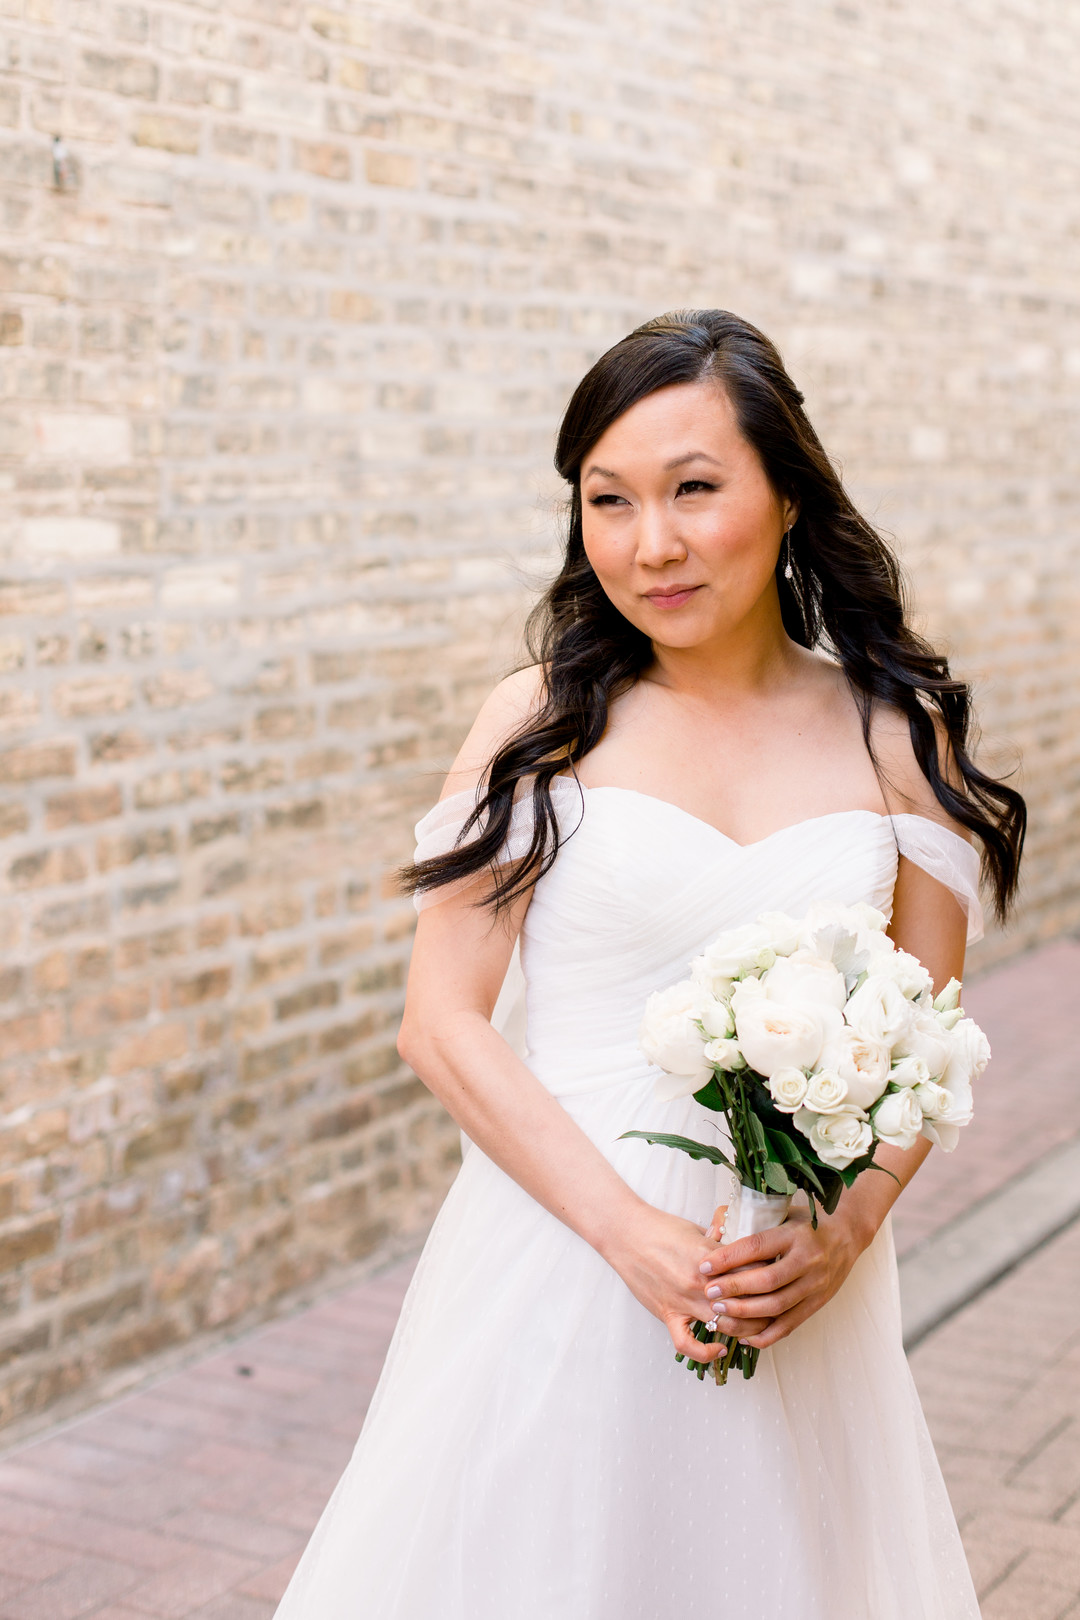 Bridal portrait: Spring wedding inspiration captured by Nicole Morisco Photography. Find more spring wedding ideas at CHItheeWED.com!